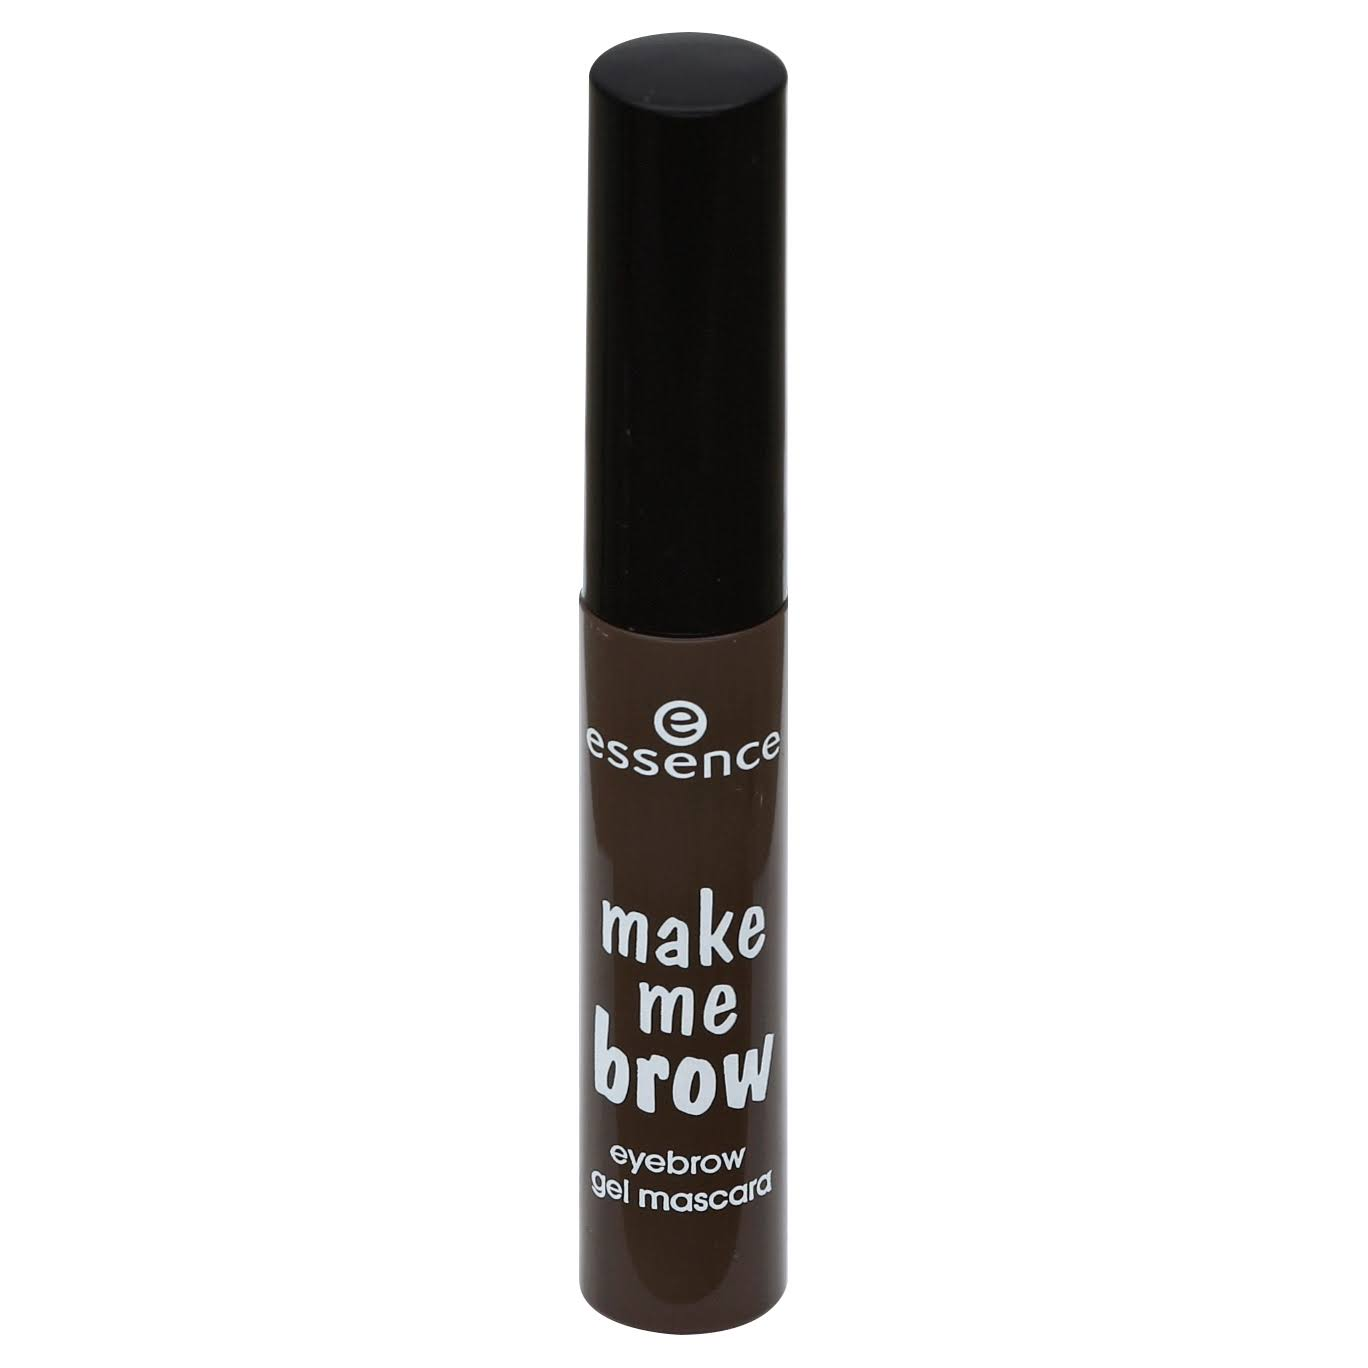 Essence Make Me Brow Eyebrow Gel Mascara - 02 Browny Brows